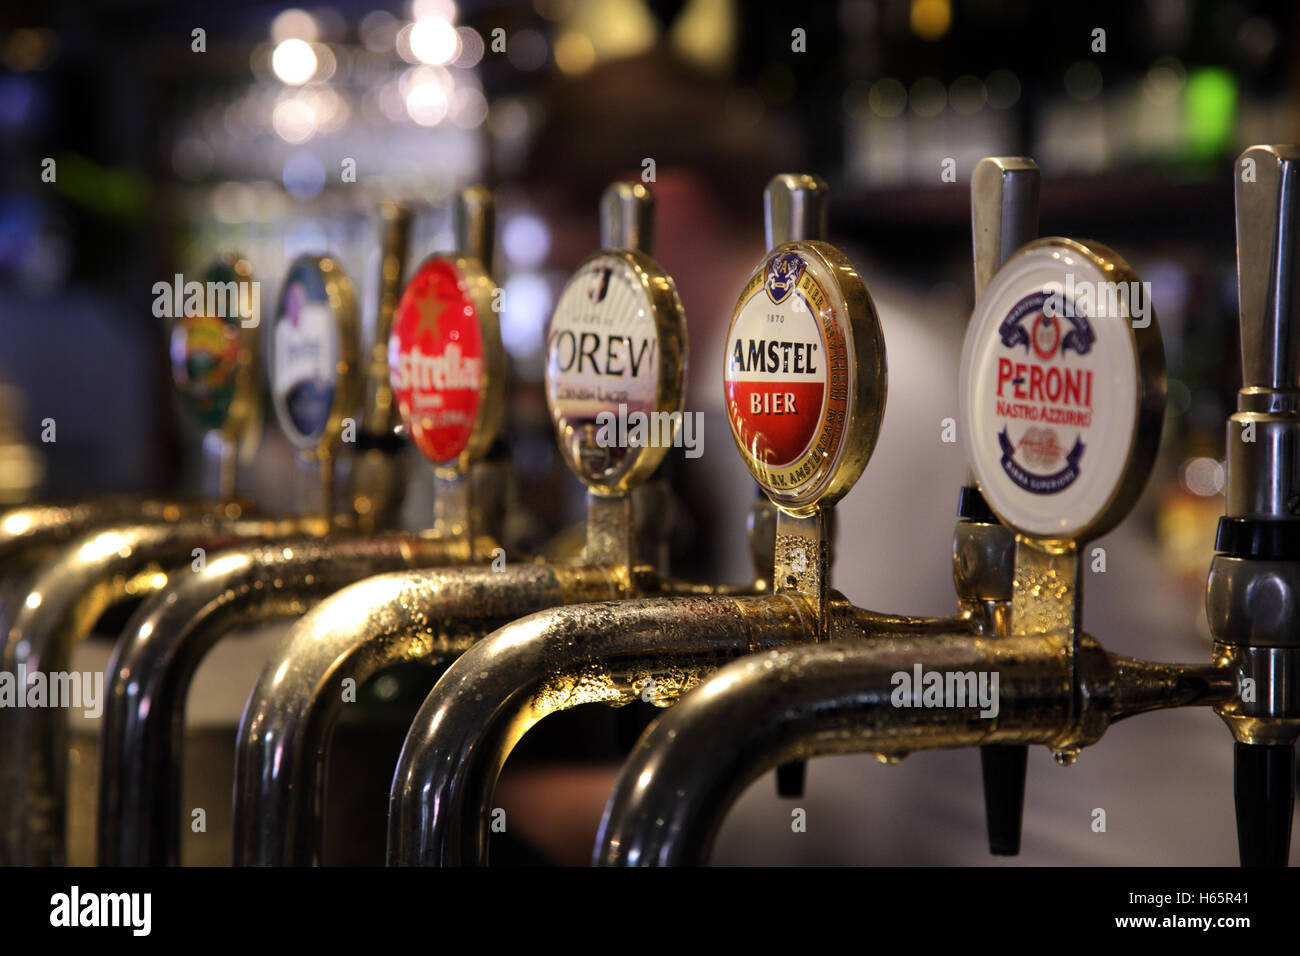 Row of lager and beer taps on a pub bar, Peroni, Amstel, Korev, Estrella Damm, - Stock Image